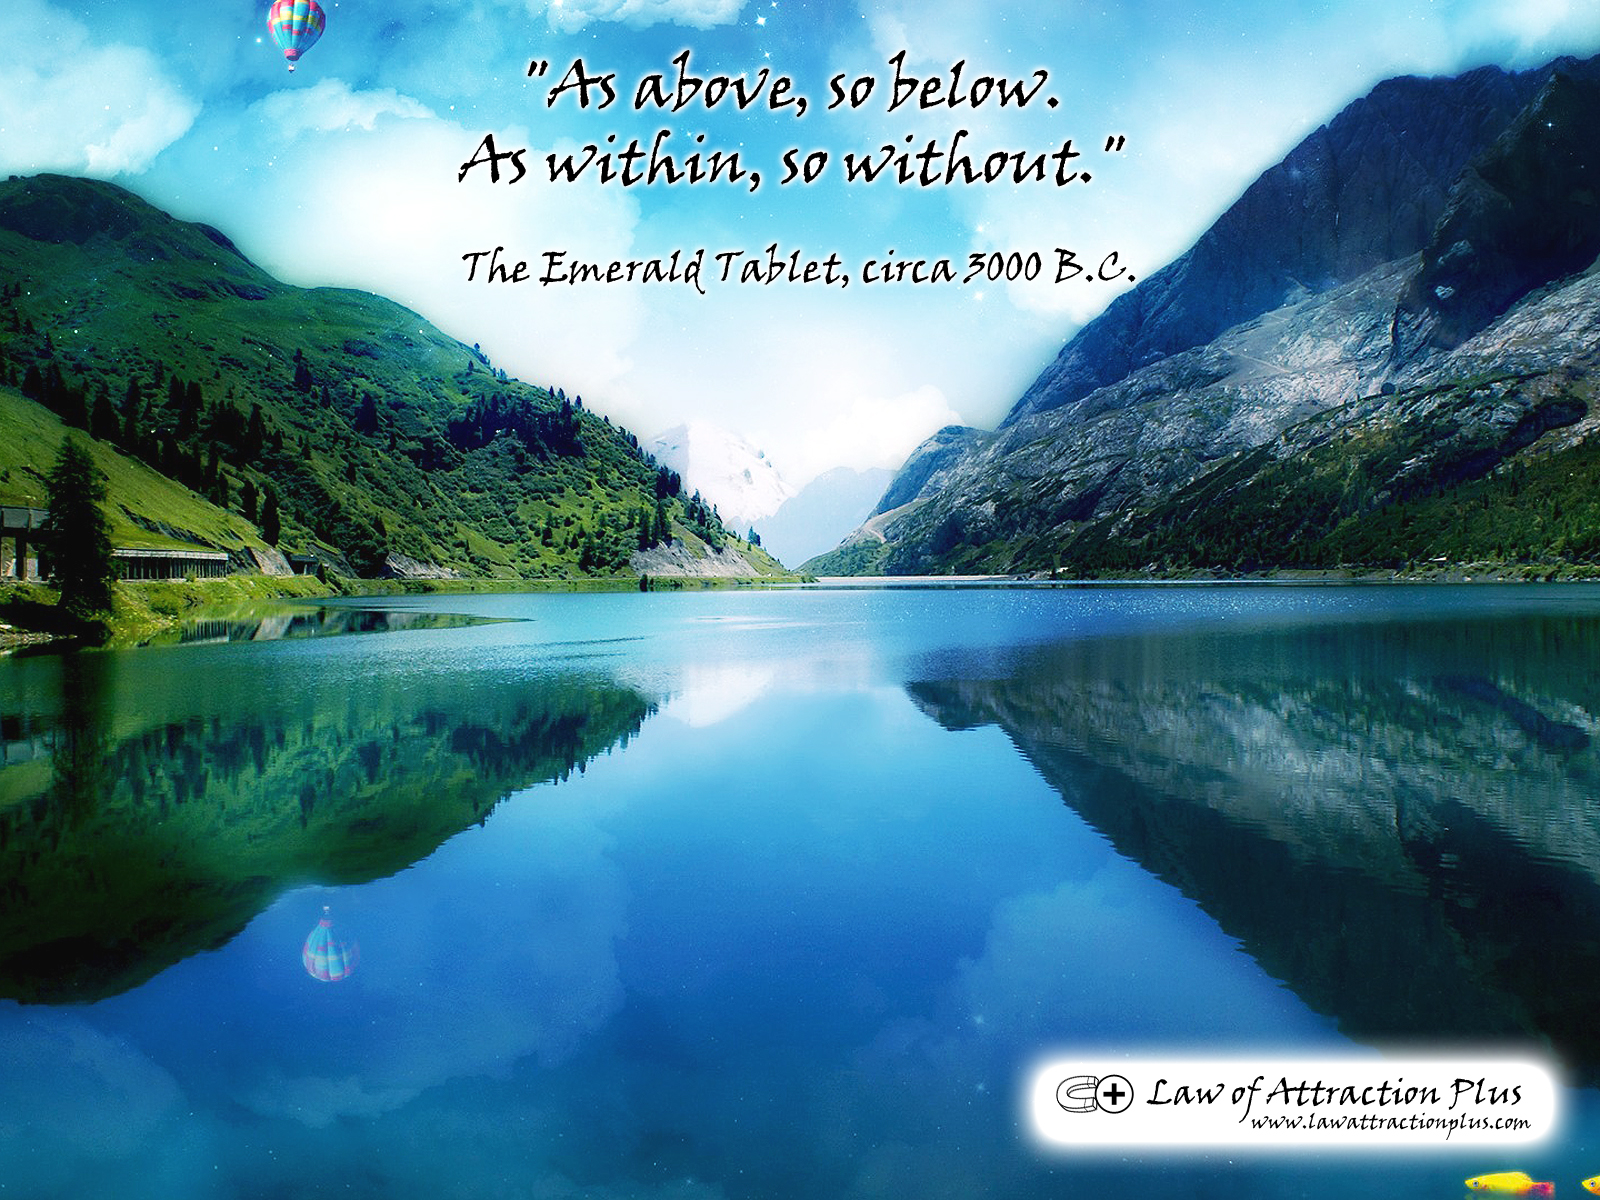 Law Of Attraction Plus The Secret Revealed As Above So Below